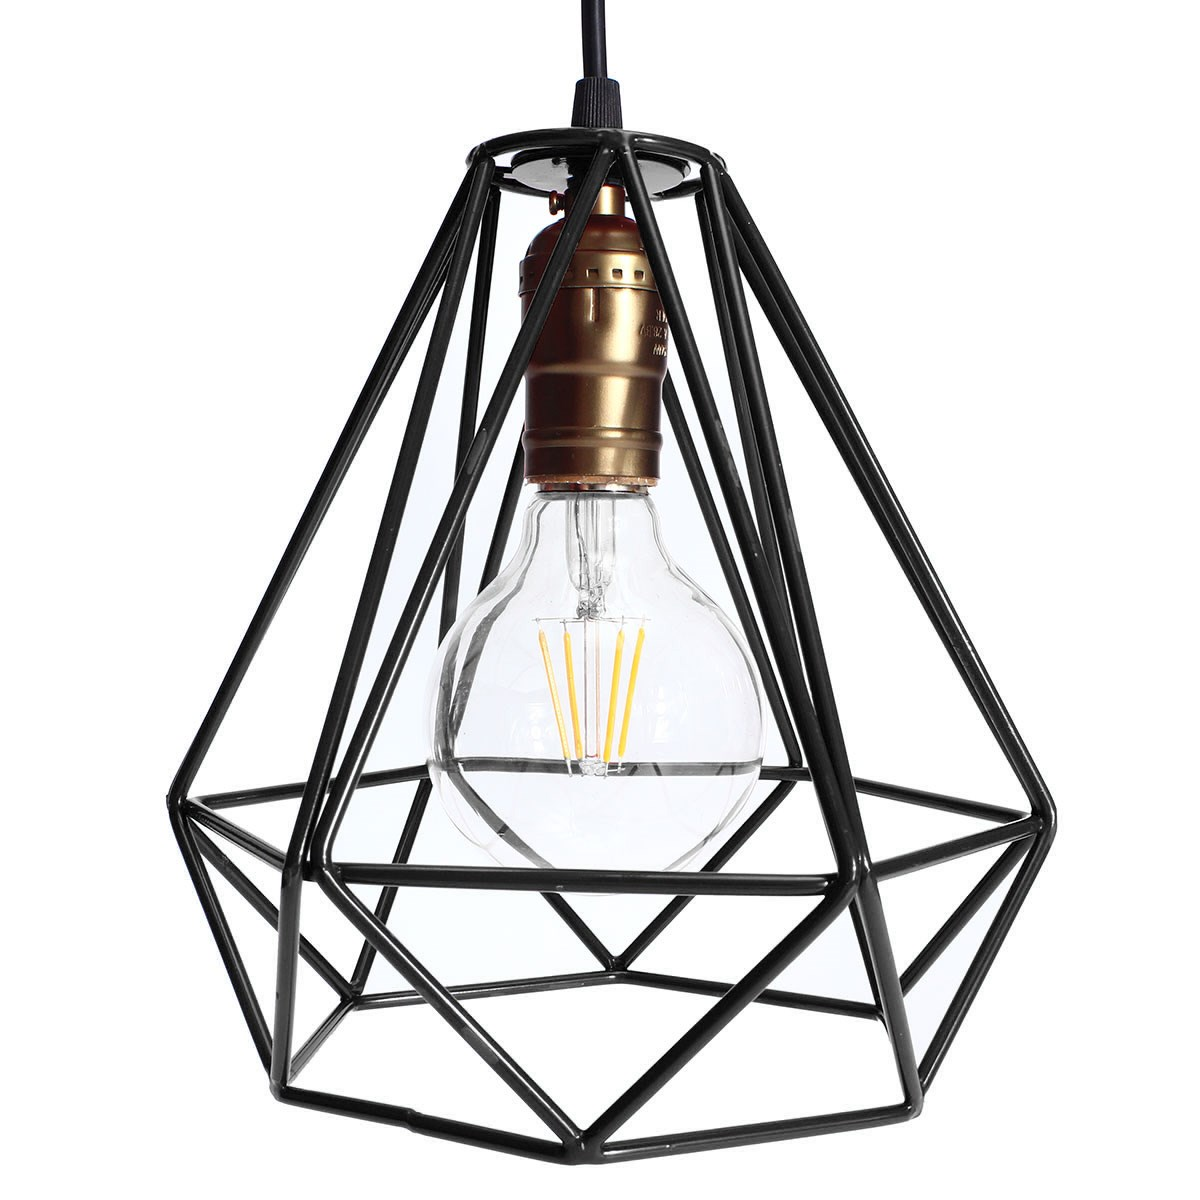 wire lamp cover wiring diagram bloglampshade modern lamp cover loft industrial edison metal wire frame white [ 1200 x 1200 Pixel ]